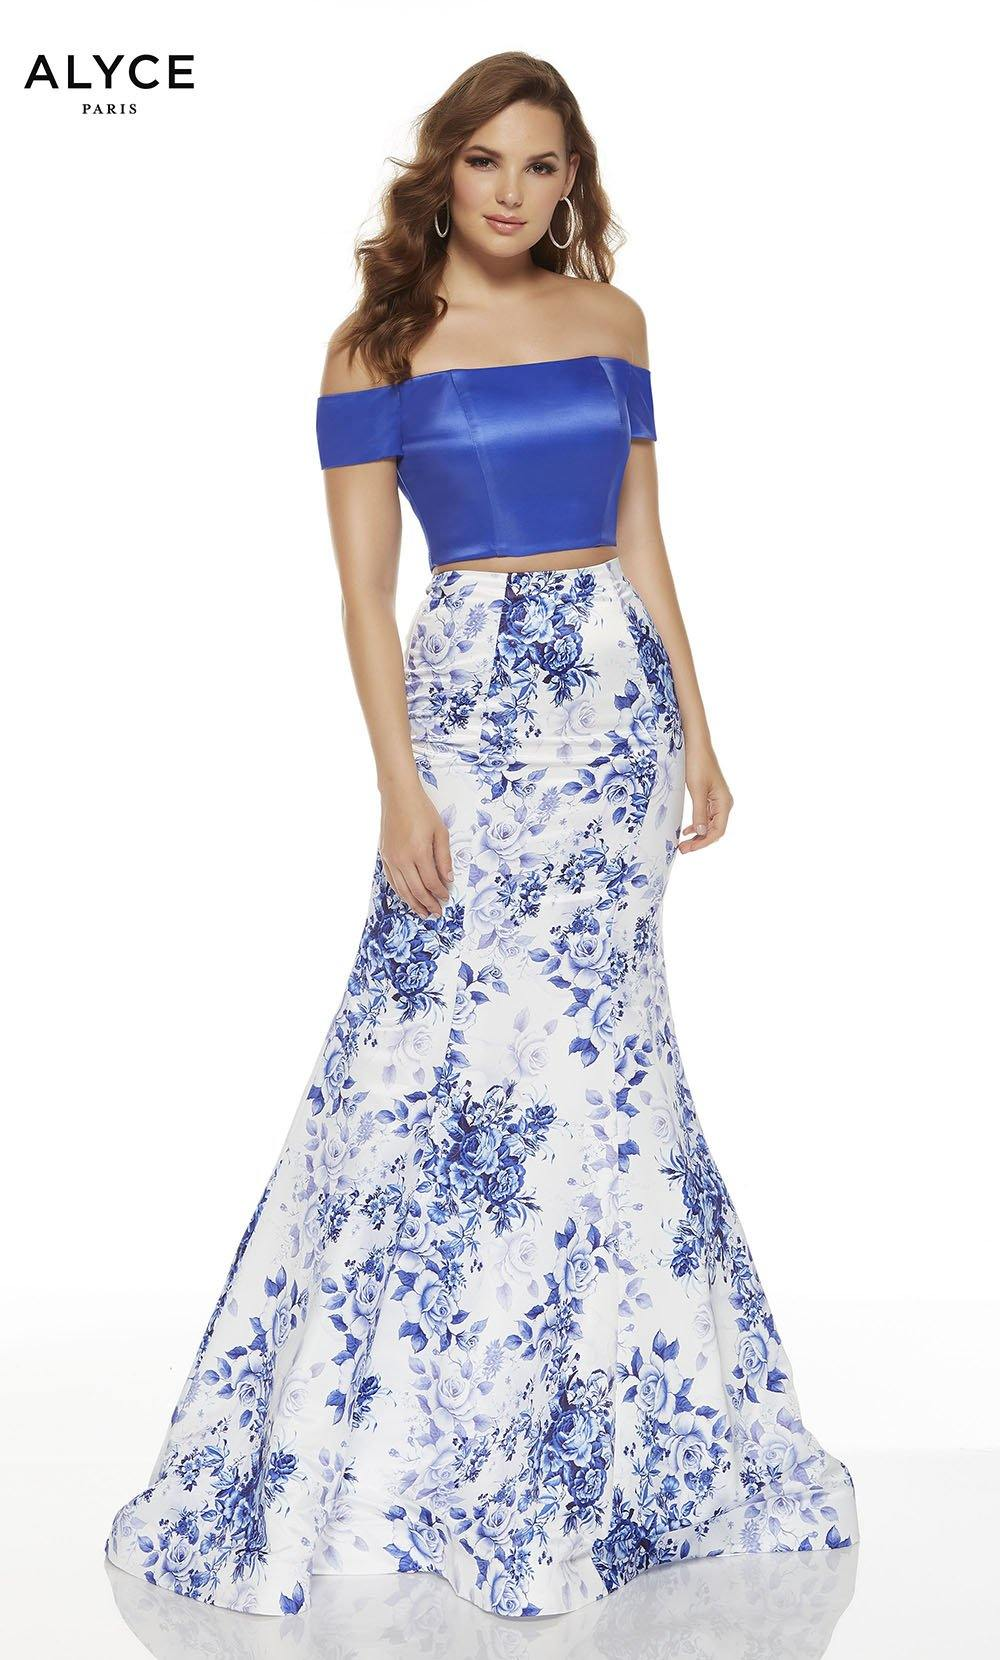 Diamond White-Royal off the shoulder two piece formal dress with a crop top and floral skirt